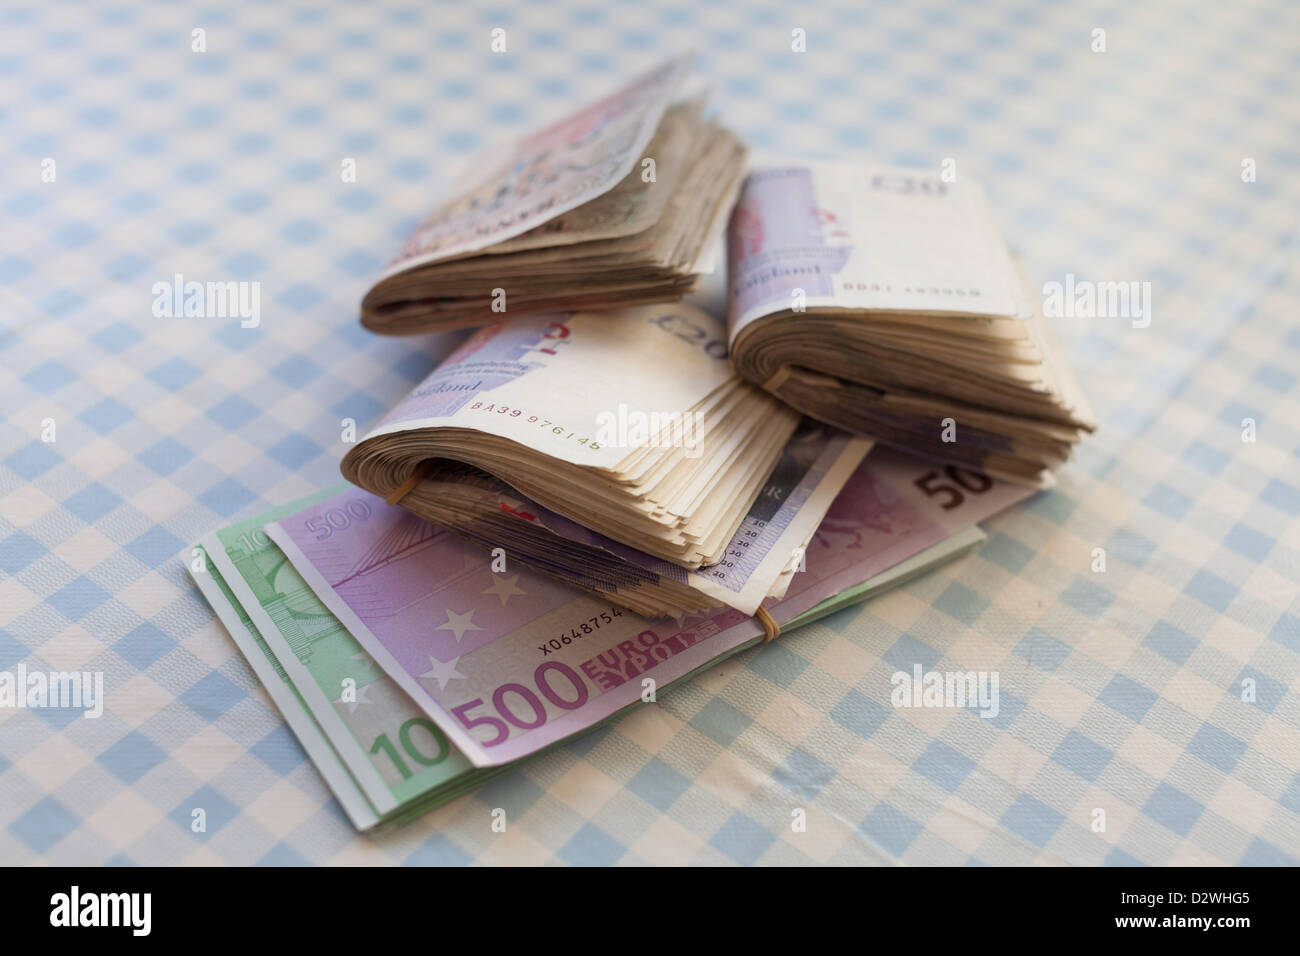 Cash-euros and UK pound sterling banknotes - Stock Image